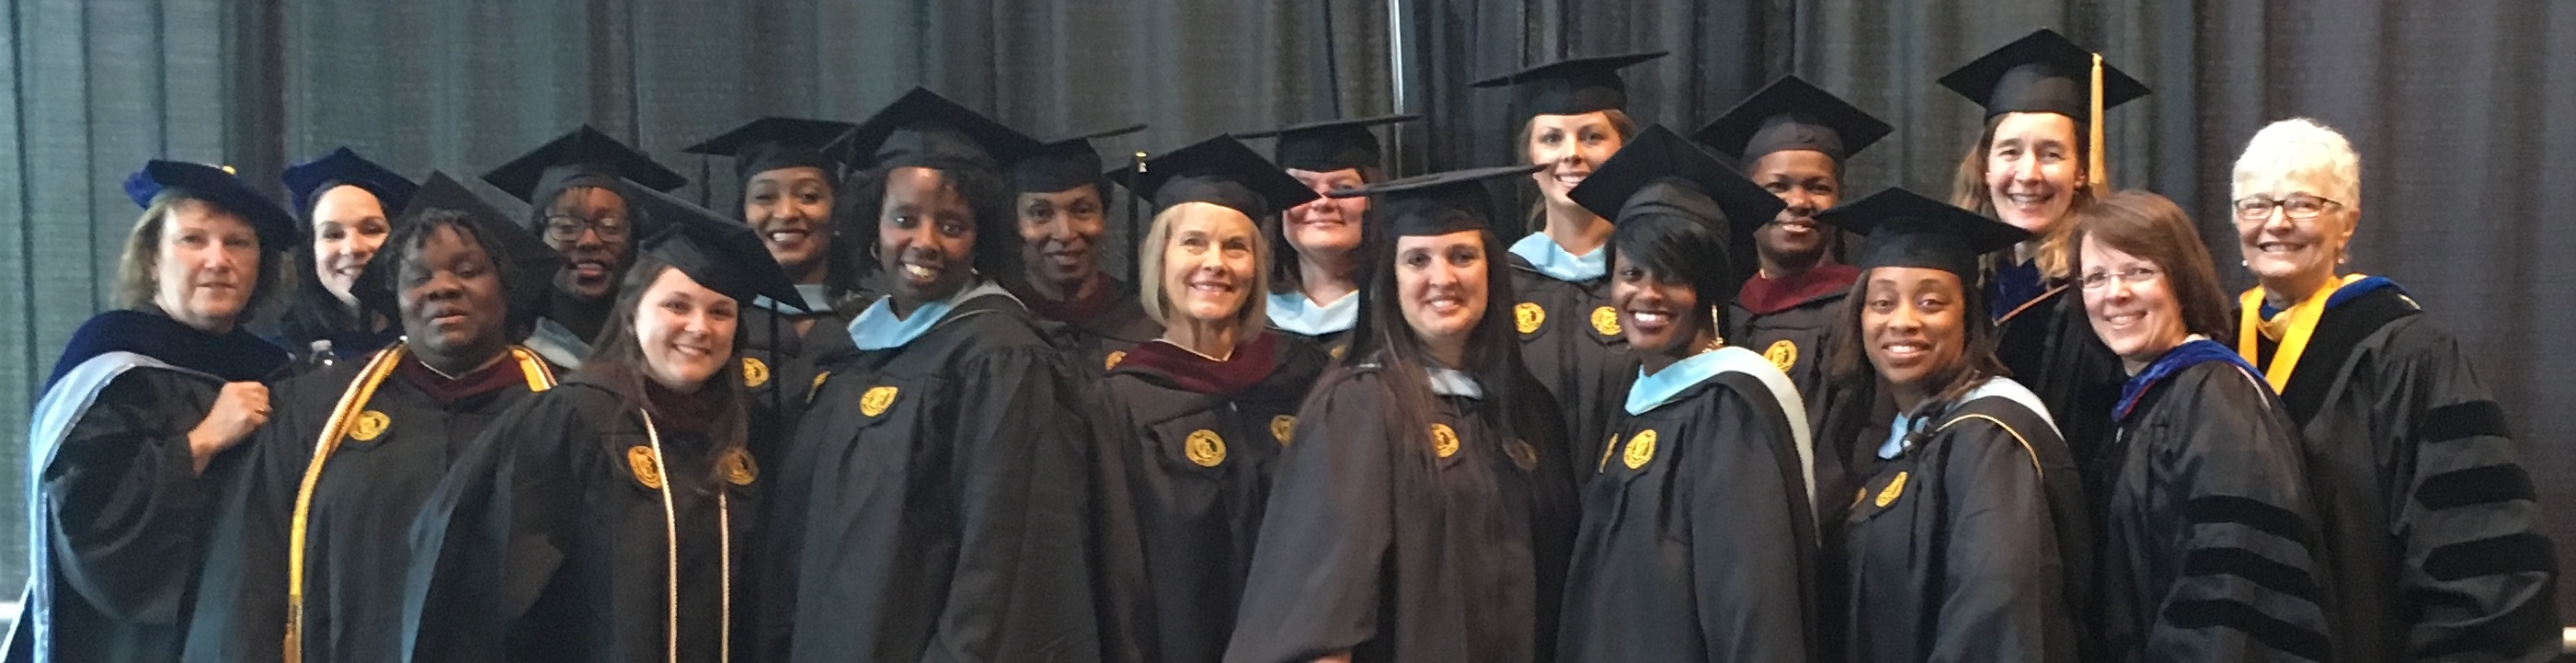 2016 graduates from the Masters of Education in Birth through Kindergarten Interdisciplinary Studies of Education and Development online program, pictured with faculty